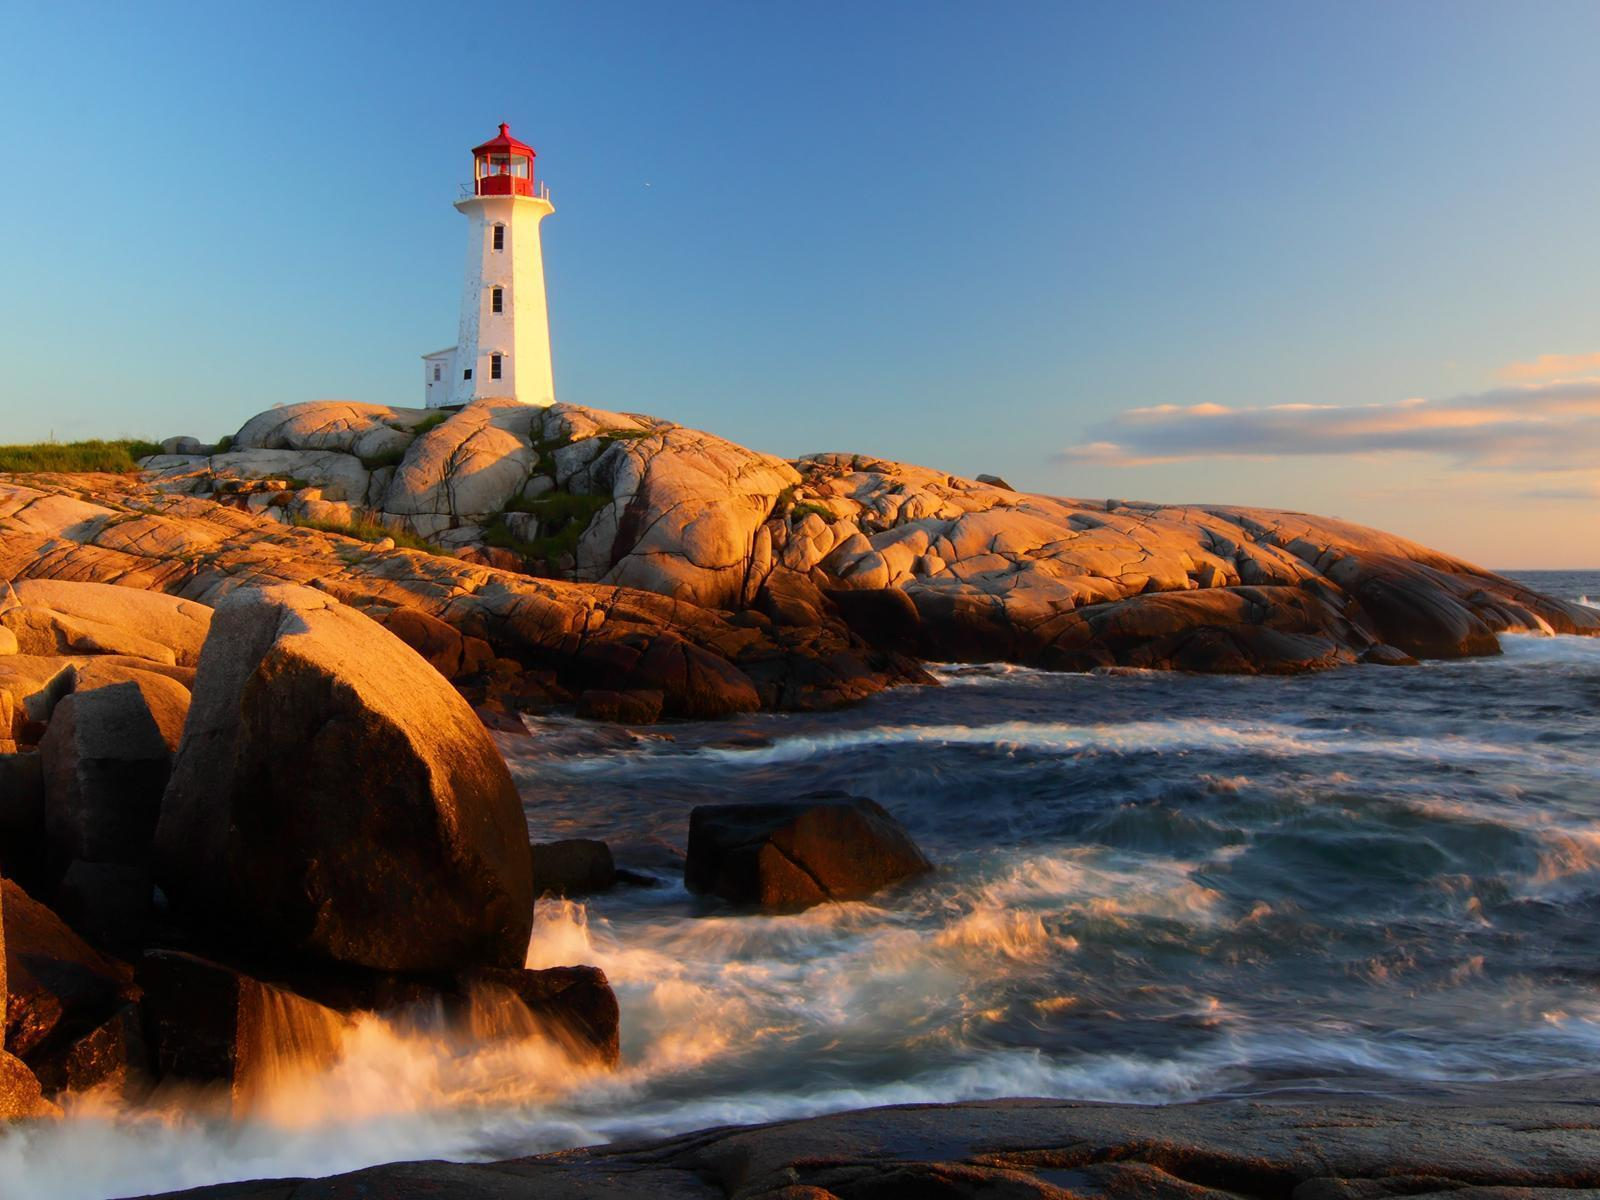 Little Lighthouse wallpapers – The Republican Agenda? America be